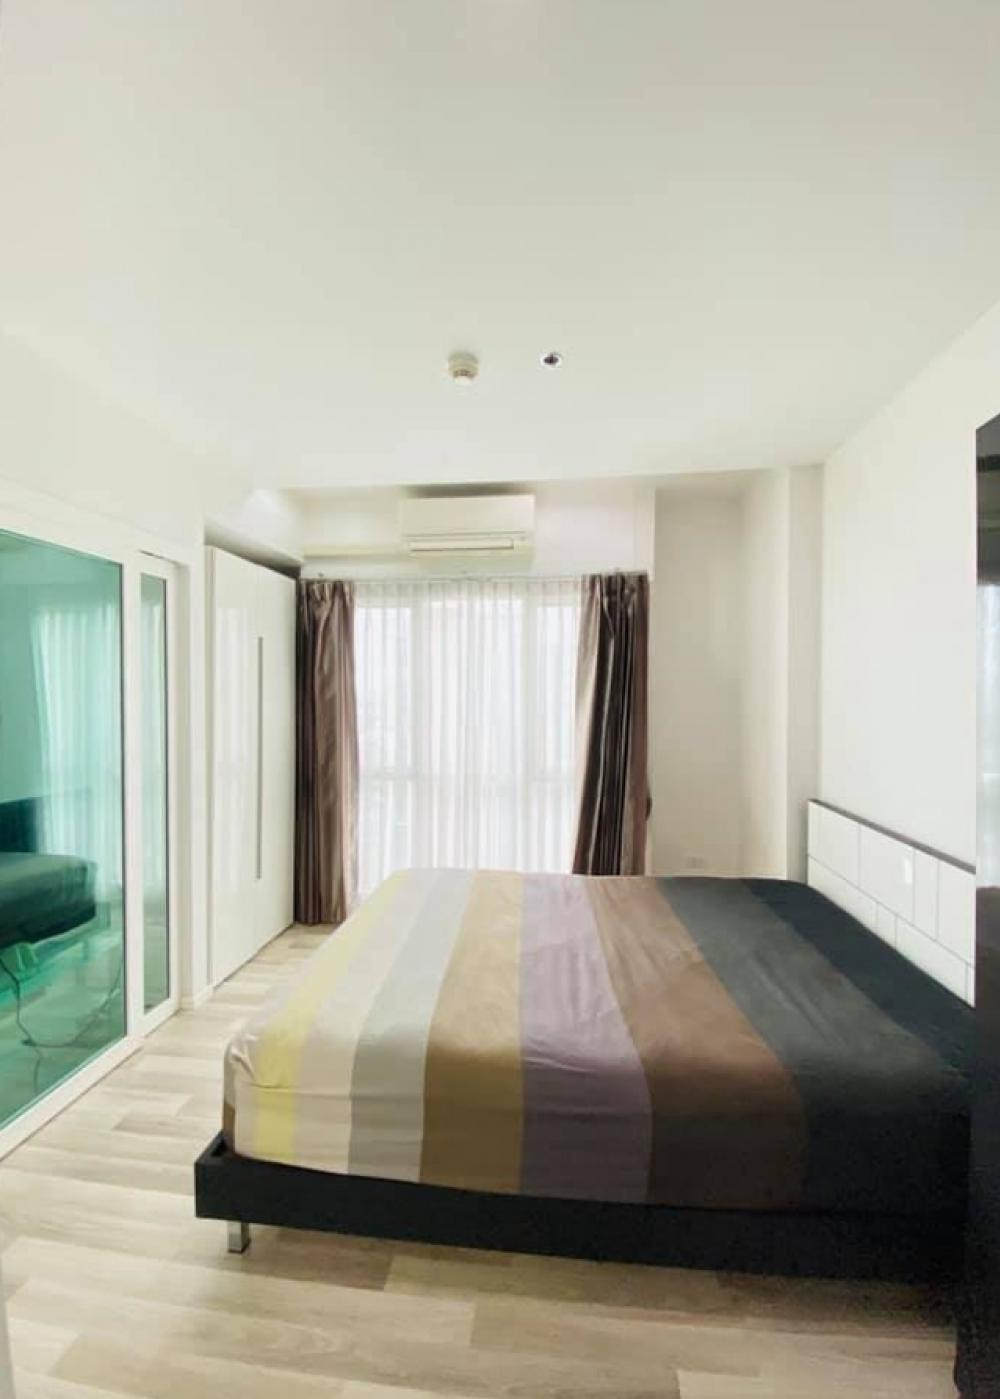 For SaleCondoChengwatana, Muangthong : TG69-0019 release sales room urgently! The Key Chaengwattana [new room ready to move in. ] All new furniture and appliances.